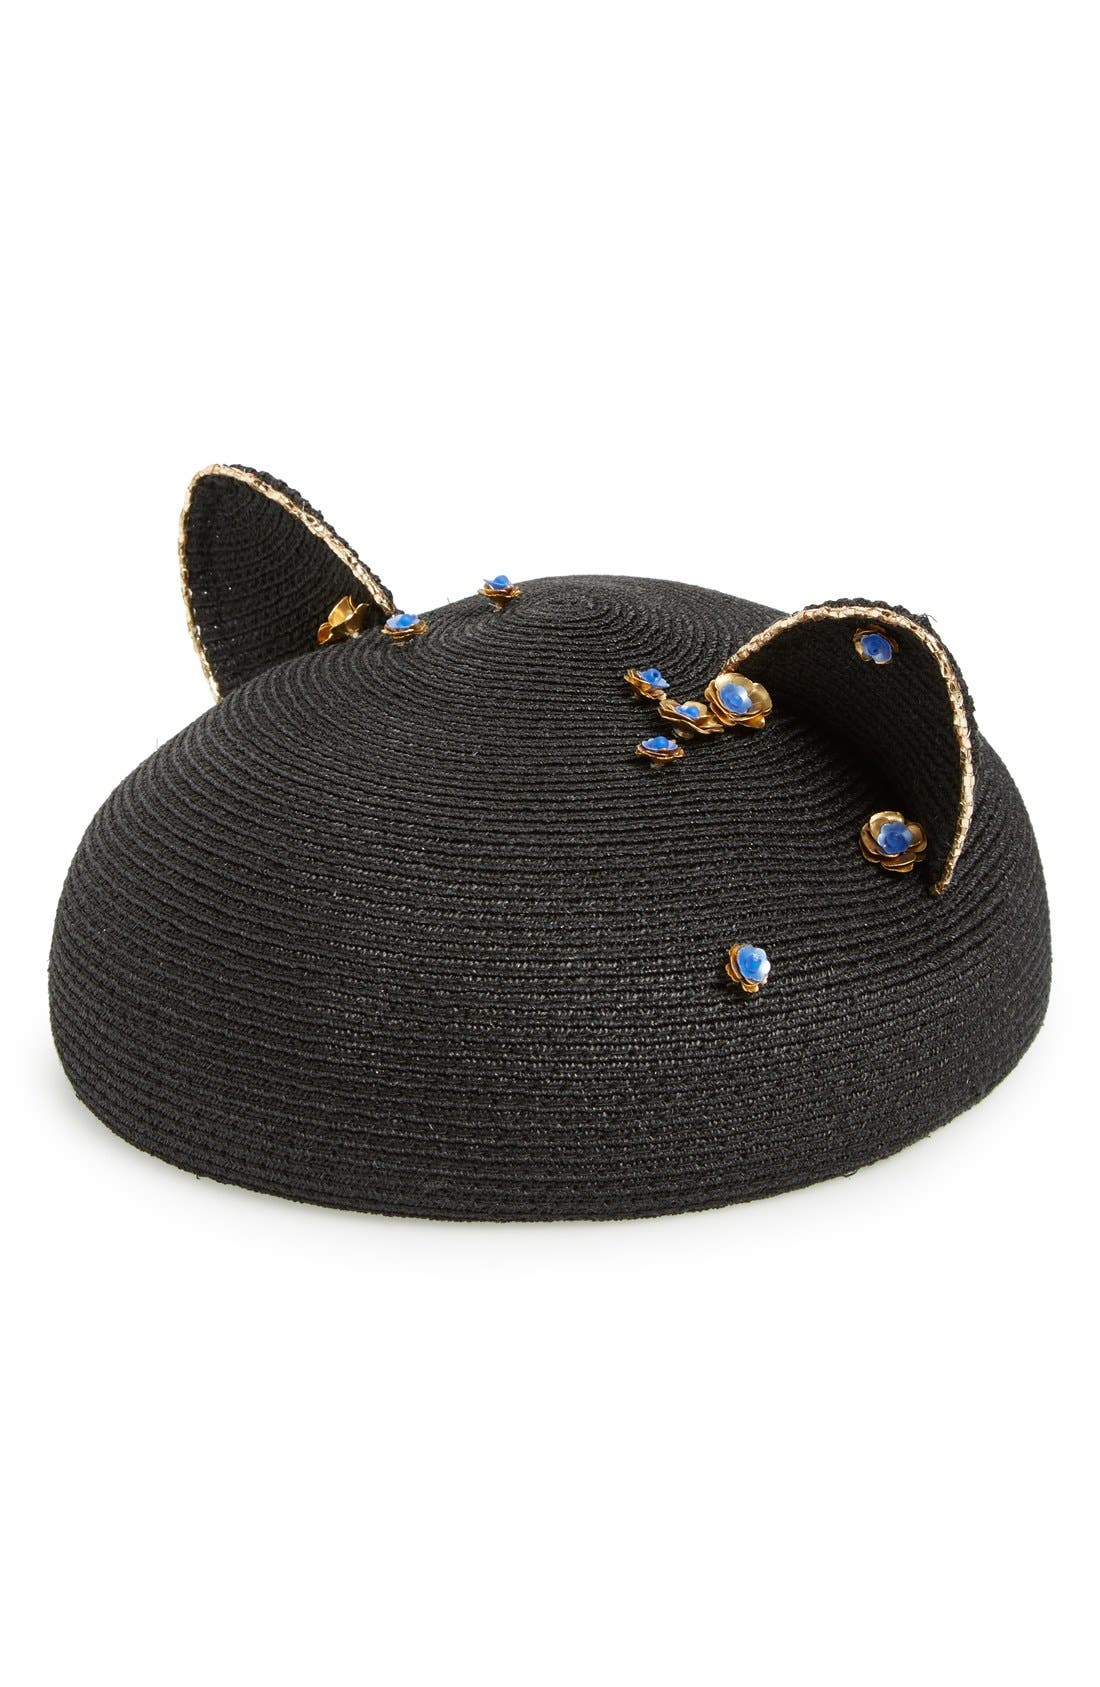 Alternate Image 1 Selected - Eugenia Kim 'Caterina' Embellished Beret